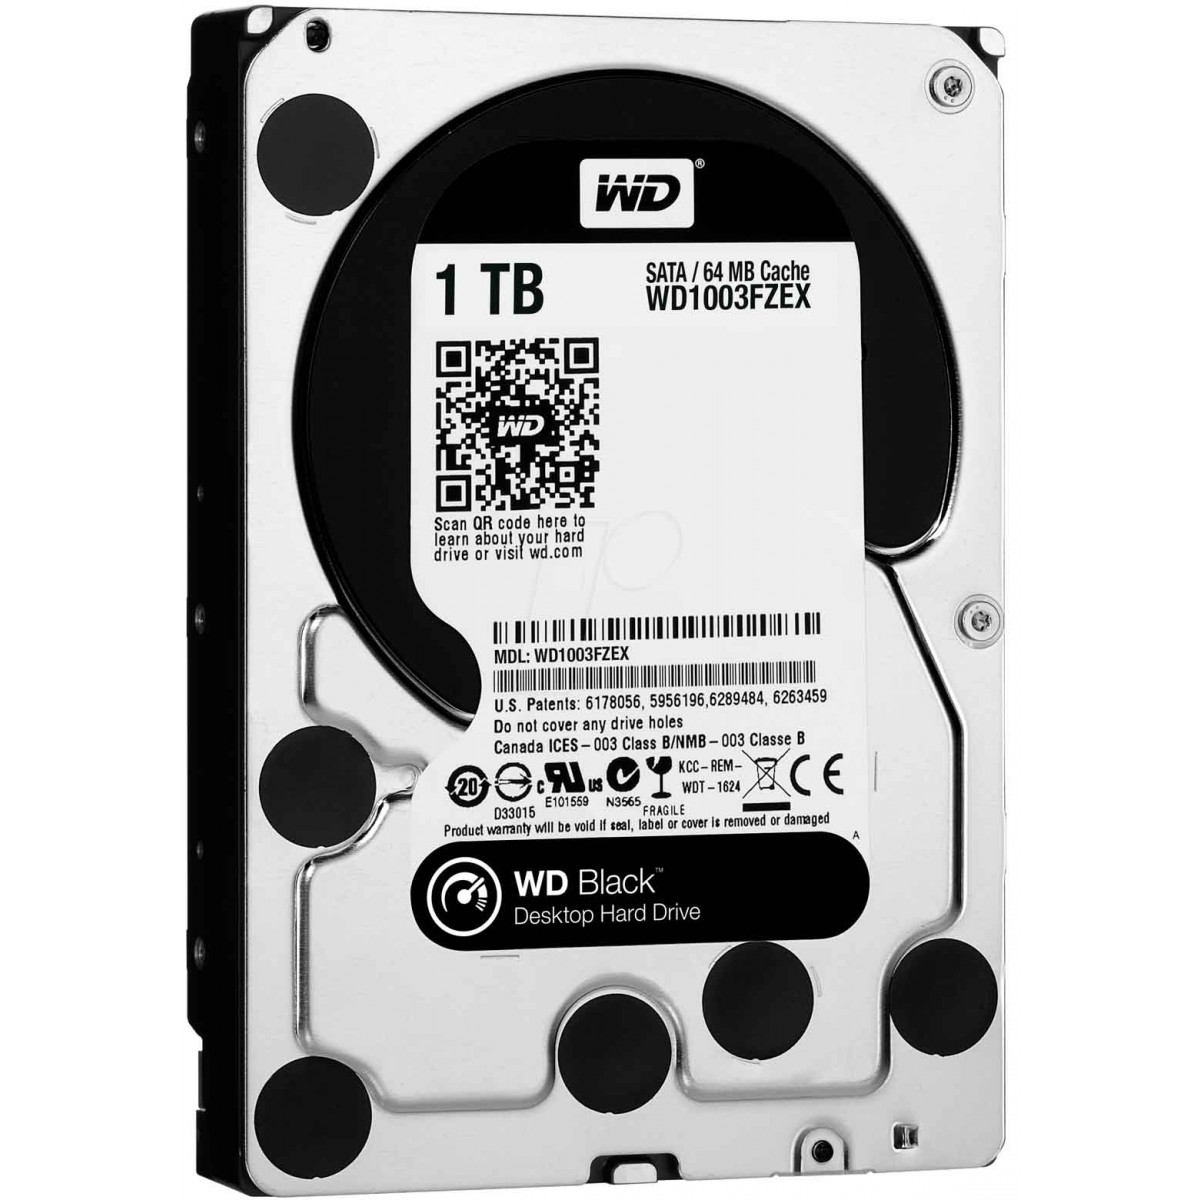 WD 1TB Black 7200RPM Desktop Hard Drive